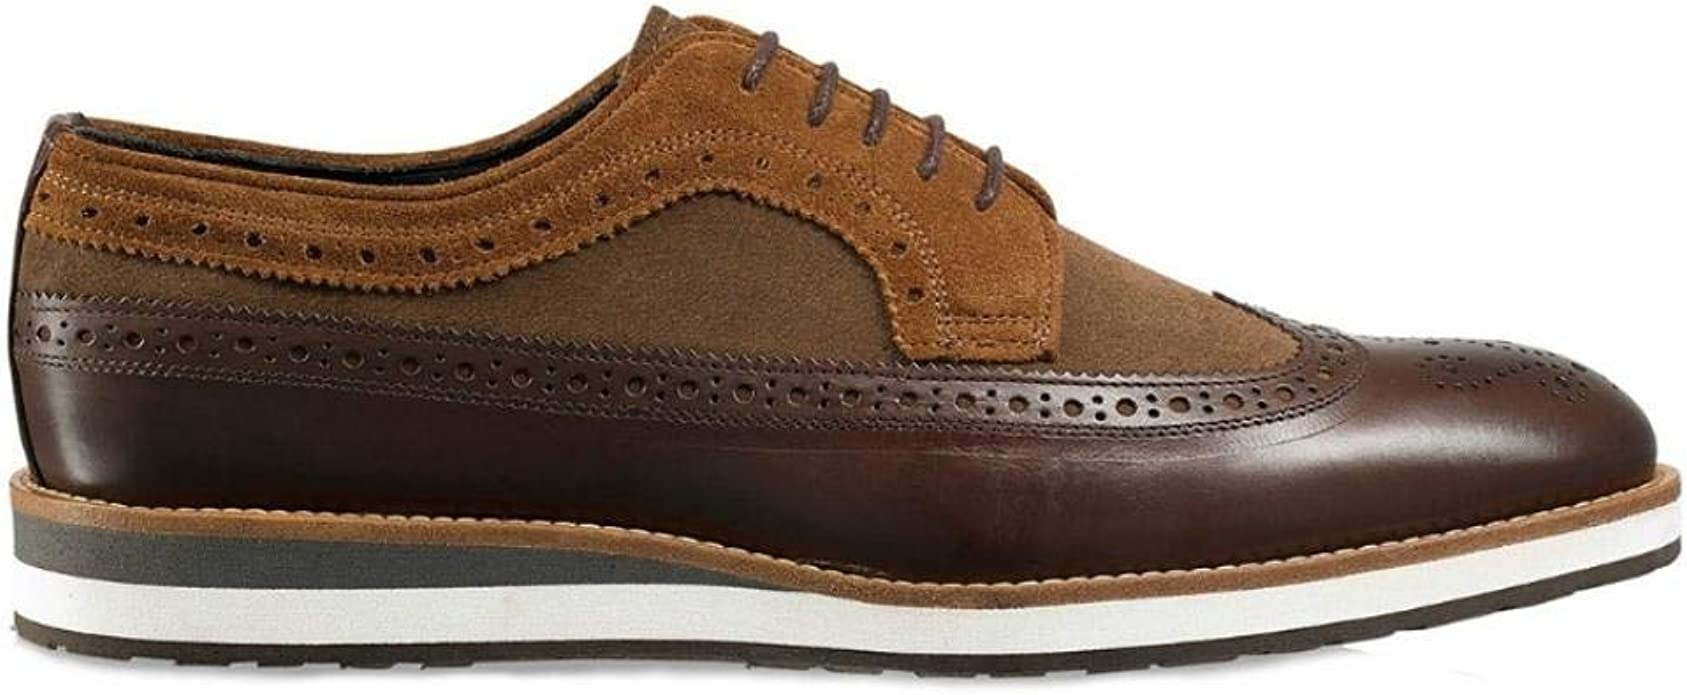 Russell \u0026 Bromley Mens Boots Password